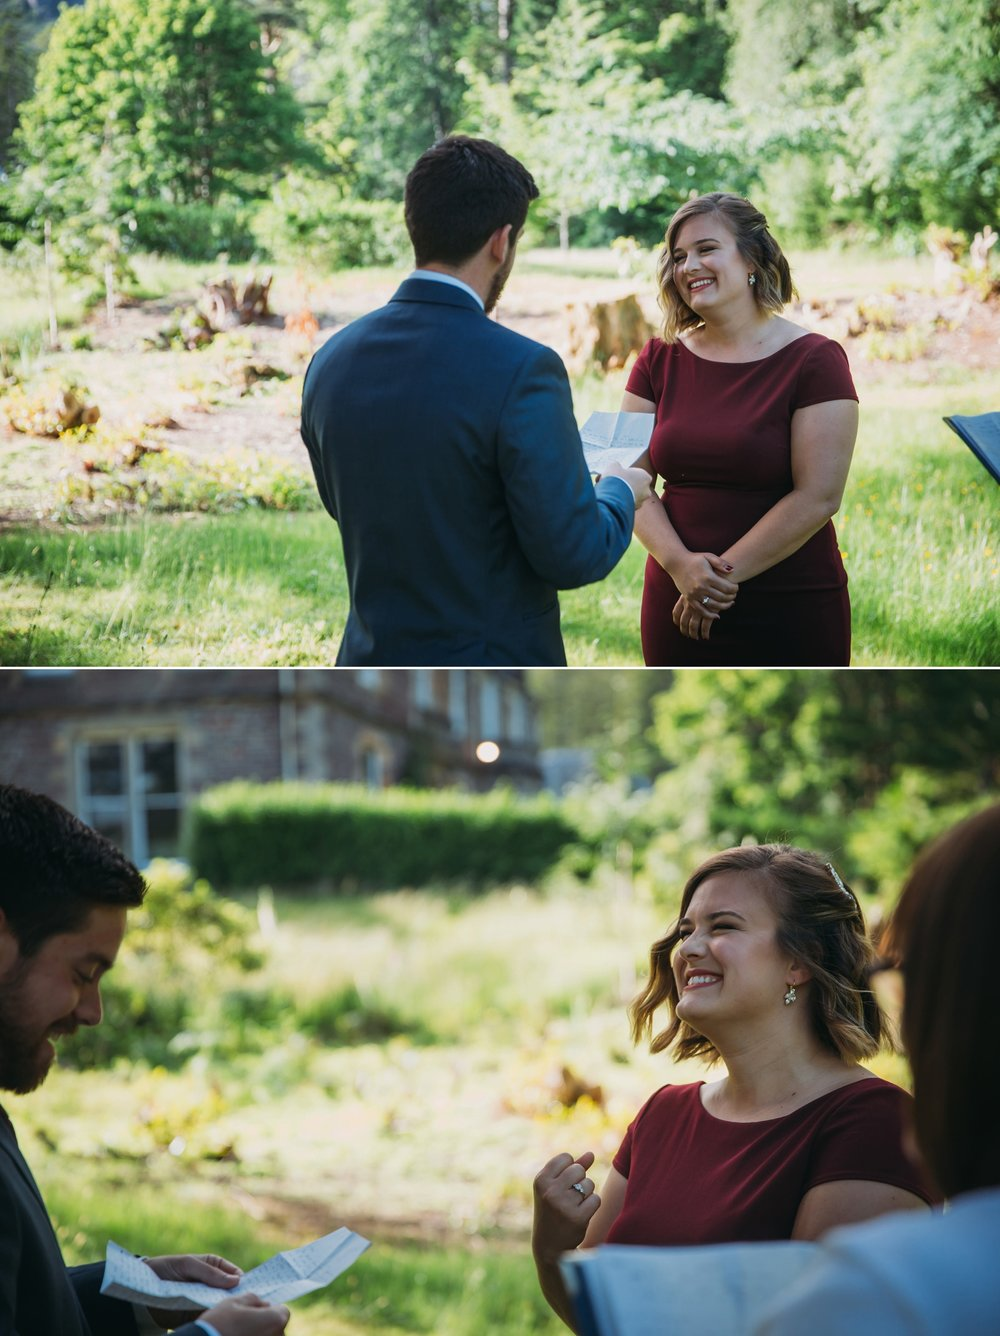 Jillian + Max eloped to Scotland, planning their wedding in two short months // Images by  Jo Donaldson Photography